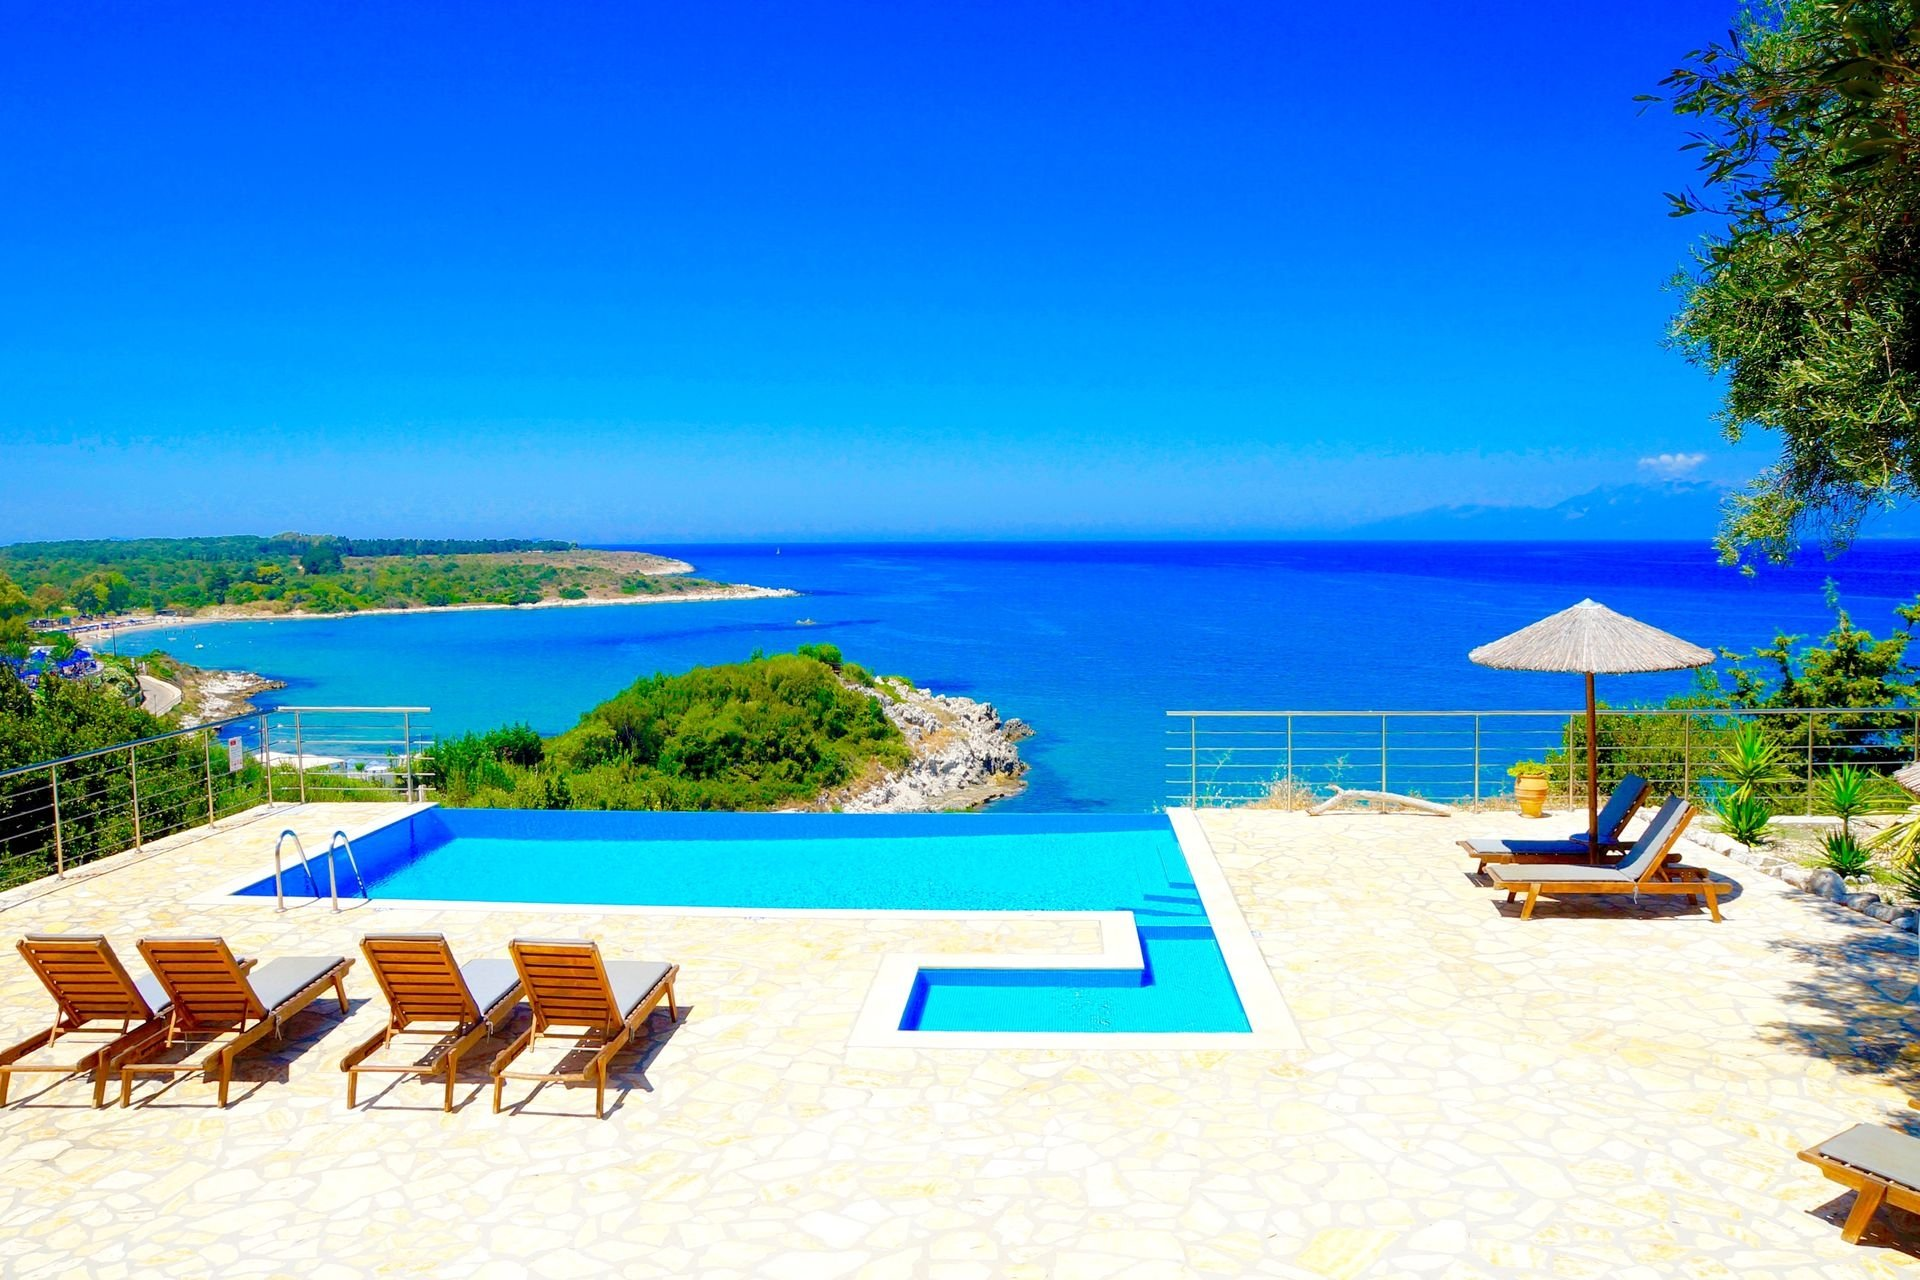 Your vacation starts here... <br>Over 600 vacation rentals in Croatia, Greece, Italy and Montenegro.